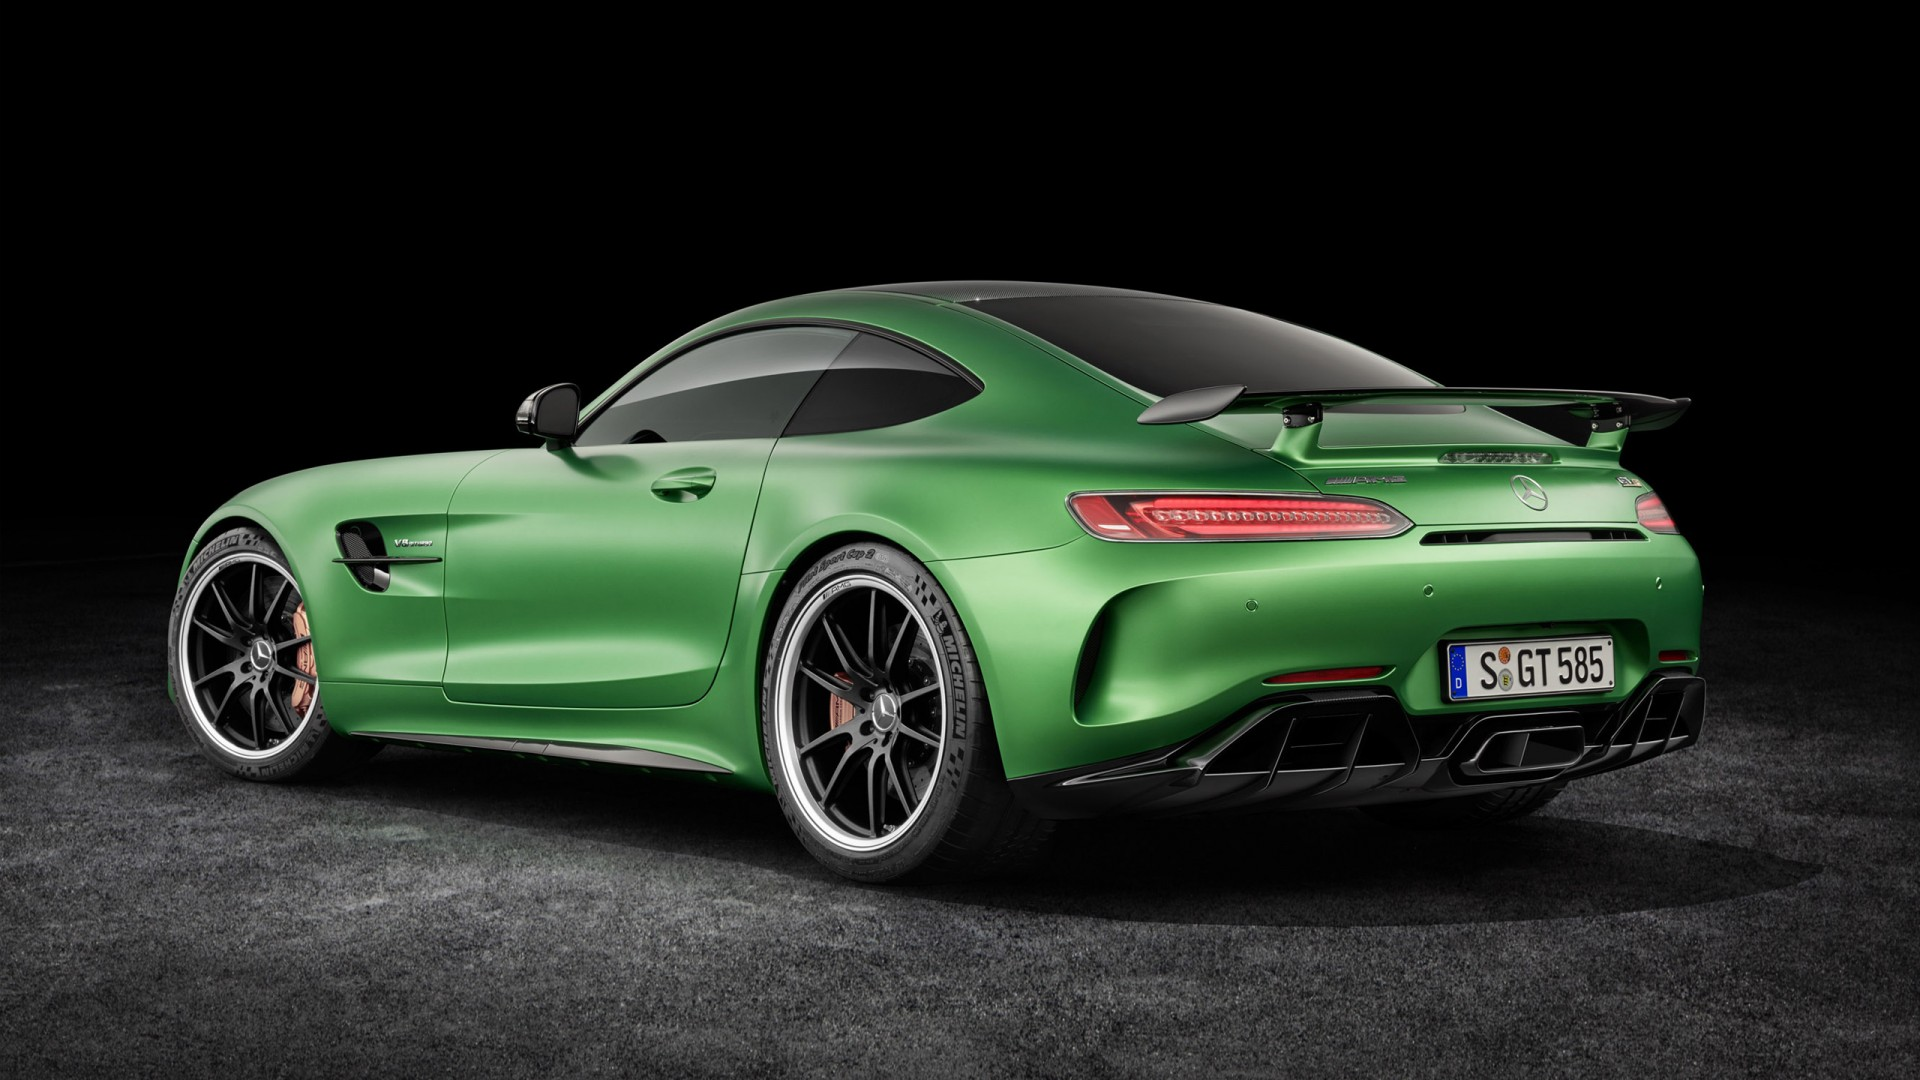 2018 mercedes amg gt r 3 wallpaper hd car wallpapers id 6722. Black Bedroom Furniture Sets. Home Design Ideas